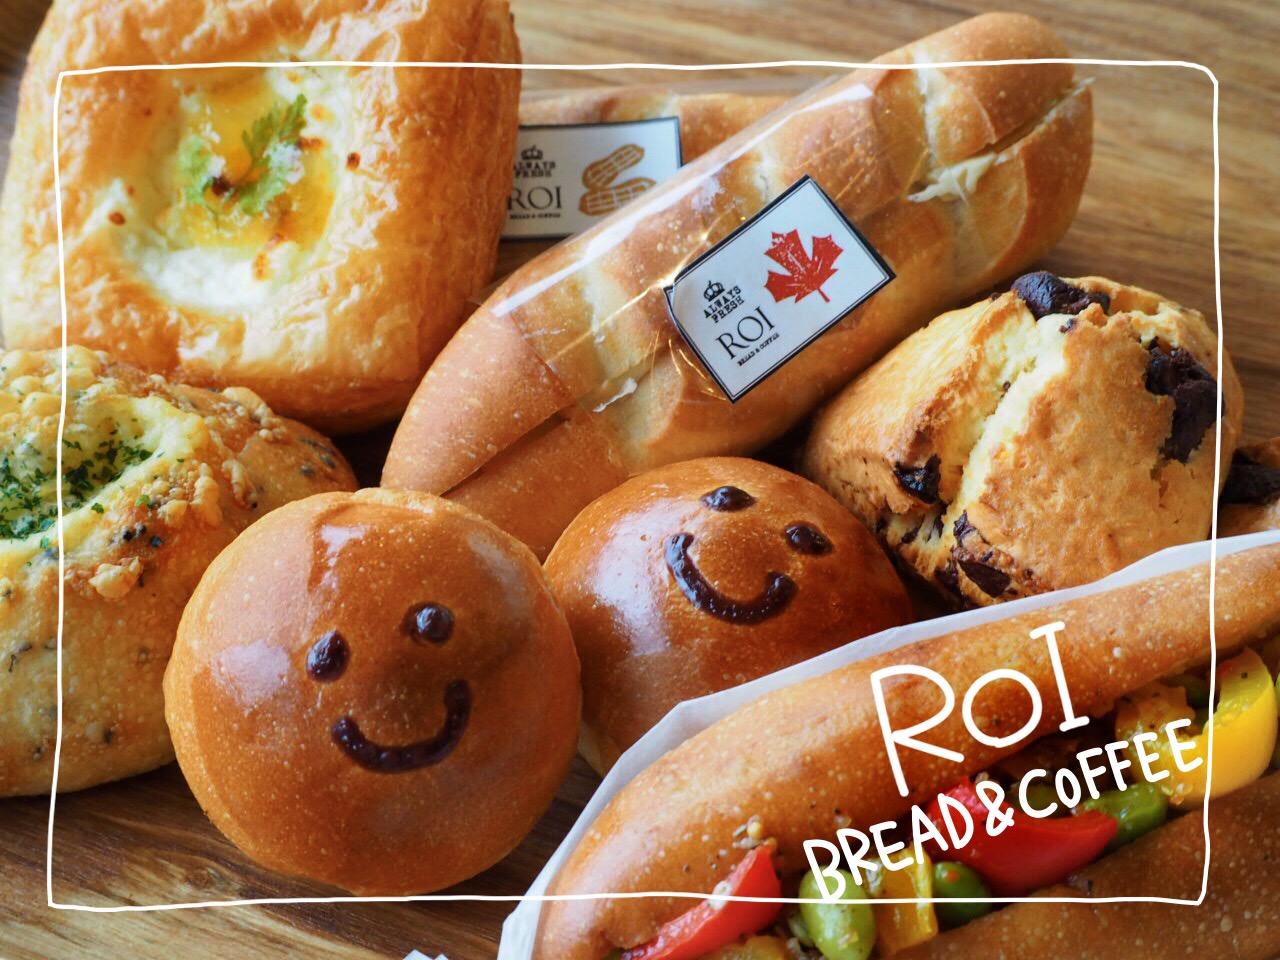 ROI-BREAD&COFFEE